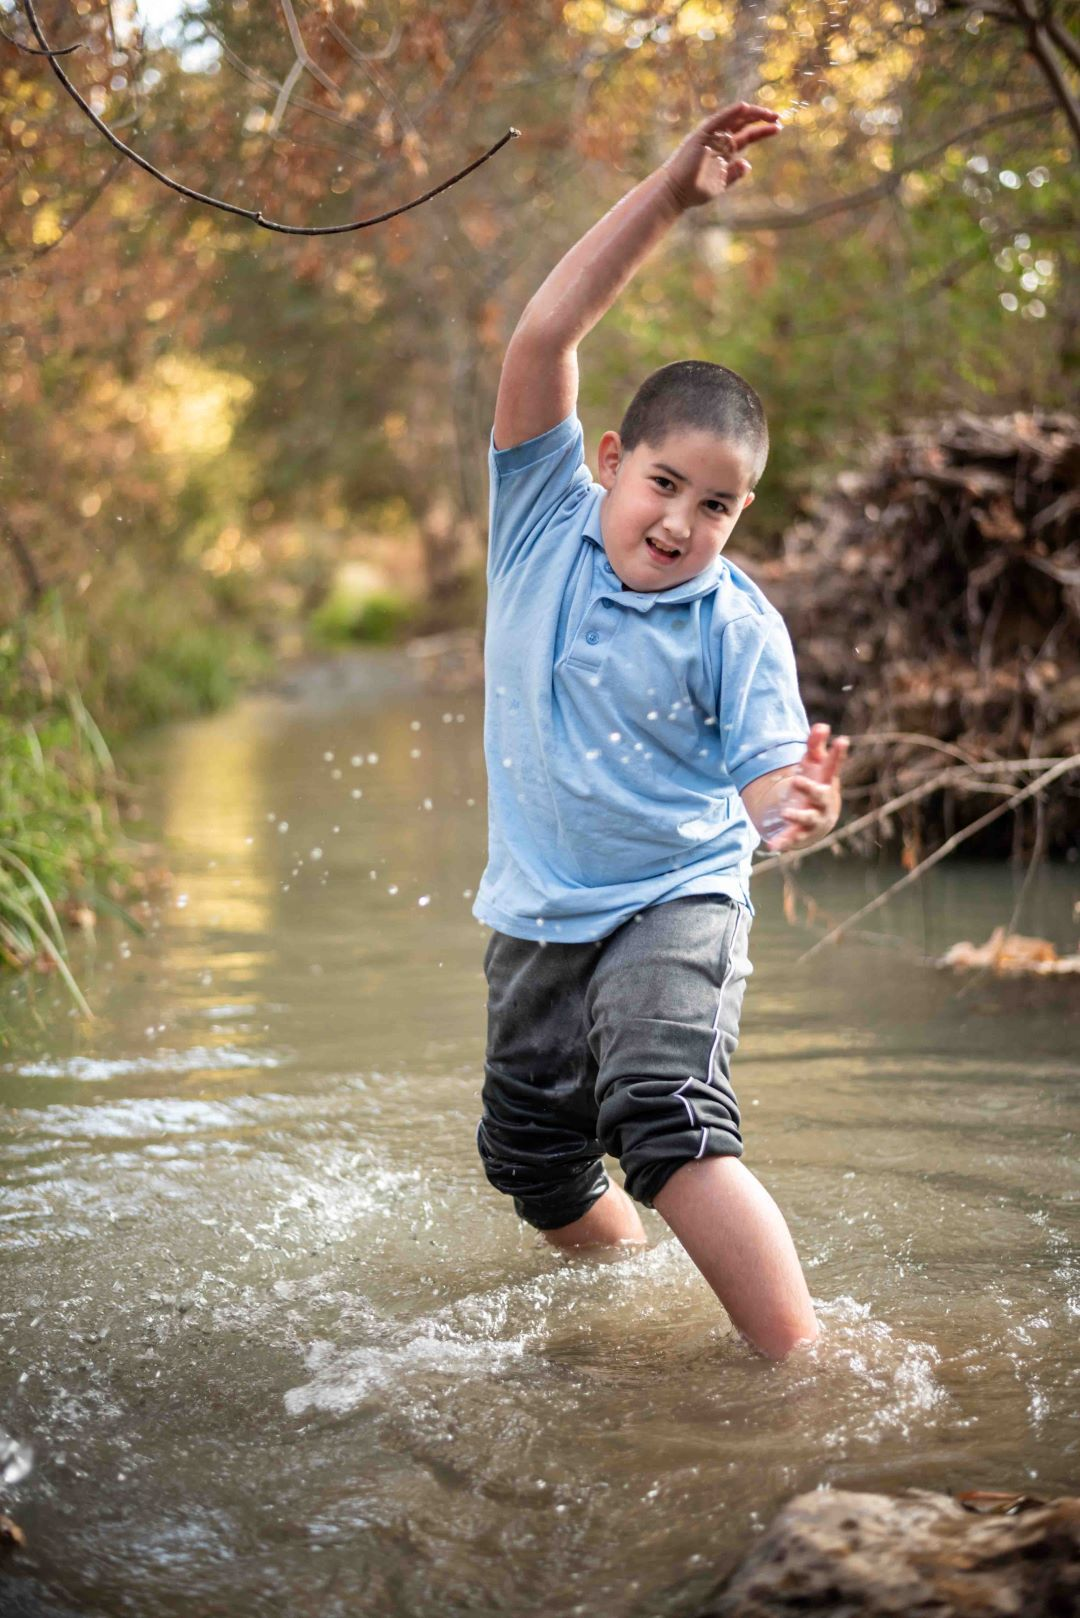 neilson outdoor family photography kids bay area cupertino mcclellan ranch creek play wild atticus